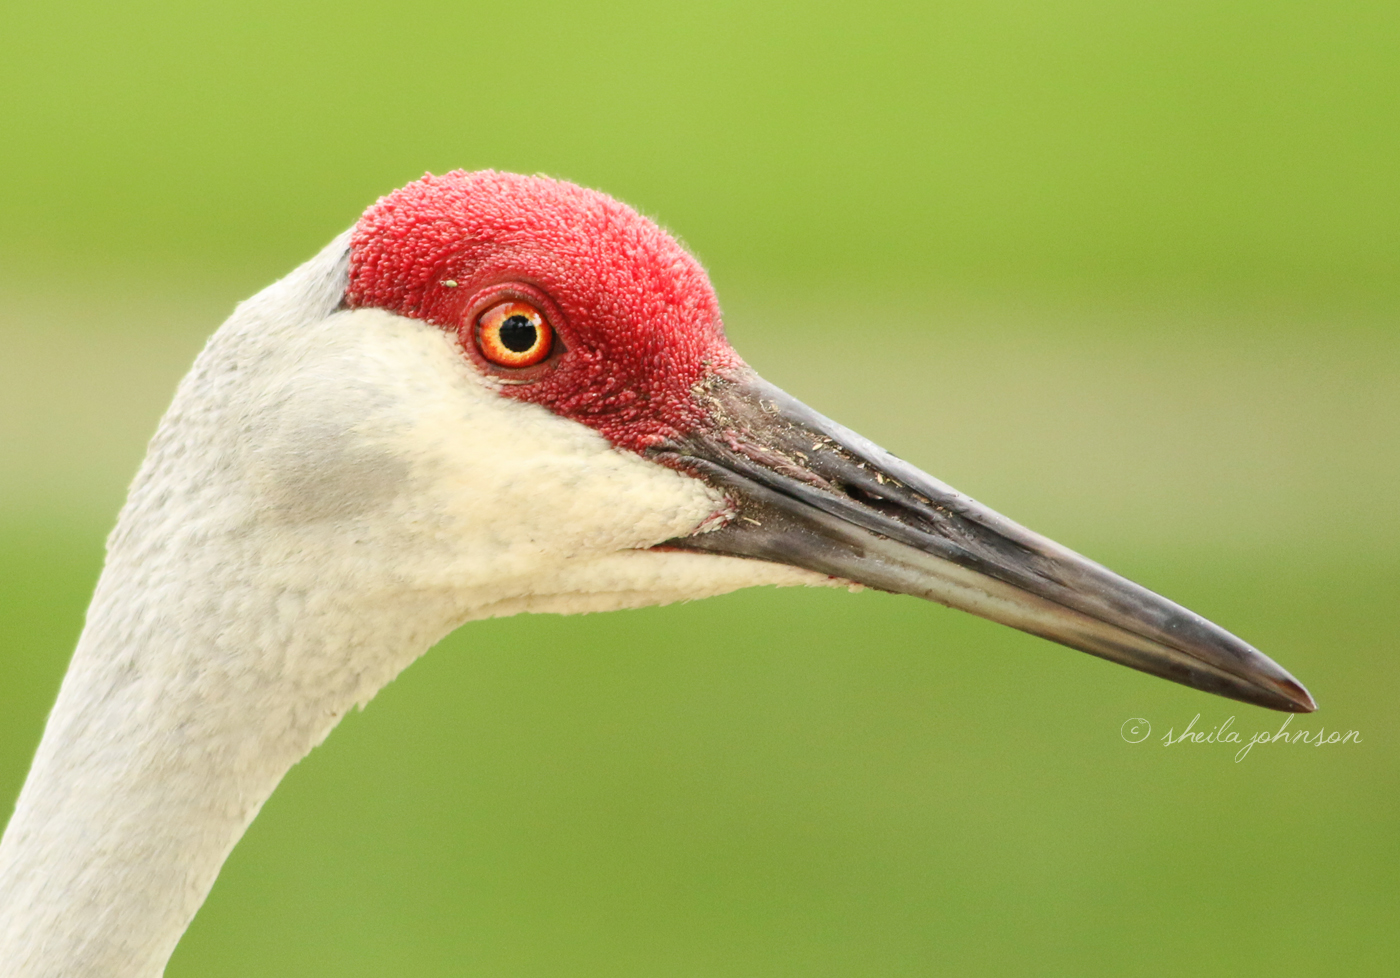 If this Sandhill Crane bends its head just the right way, we can see it's red crown and beak make a heart shape. On this one, we can see a gray heart-shaped shadow on its cheek!